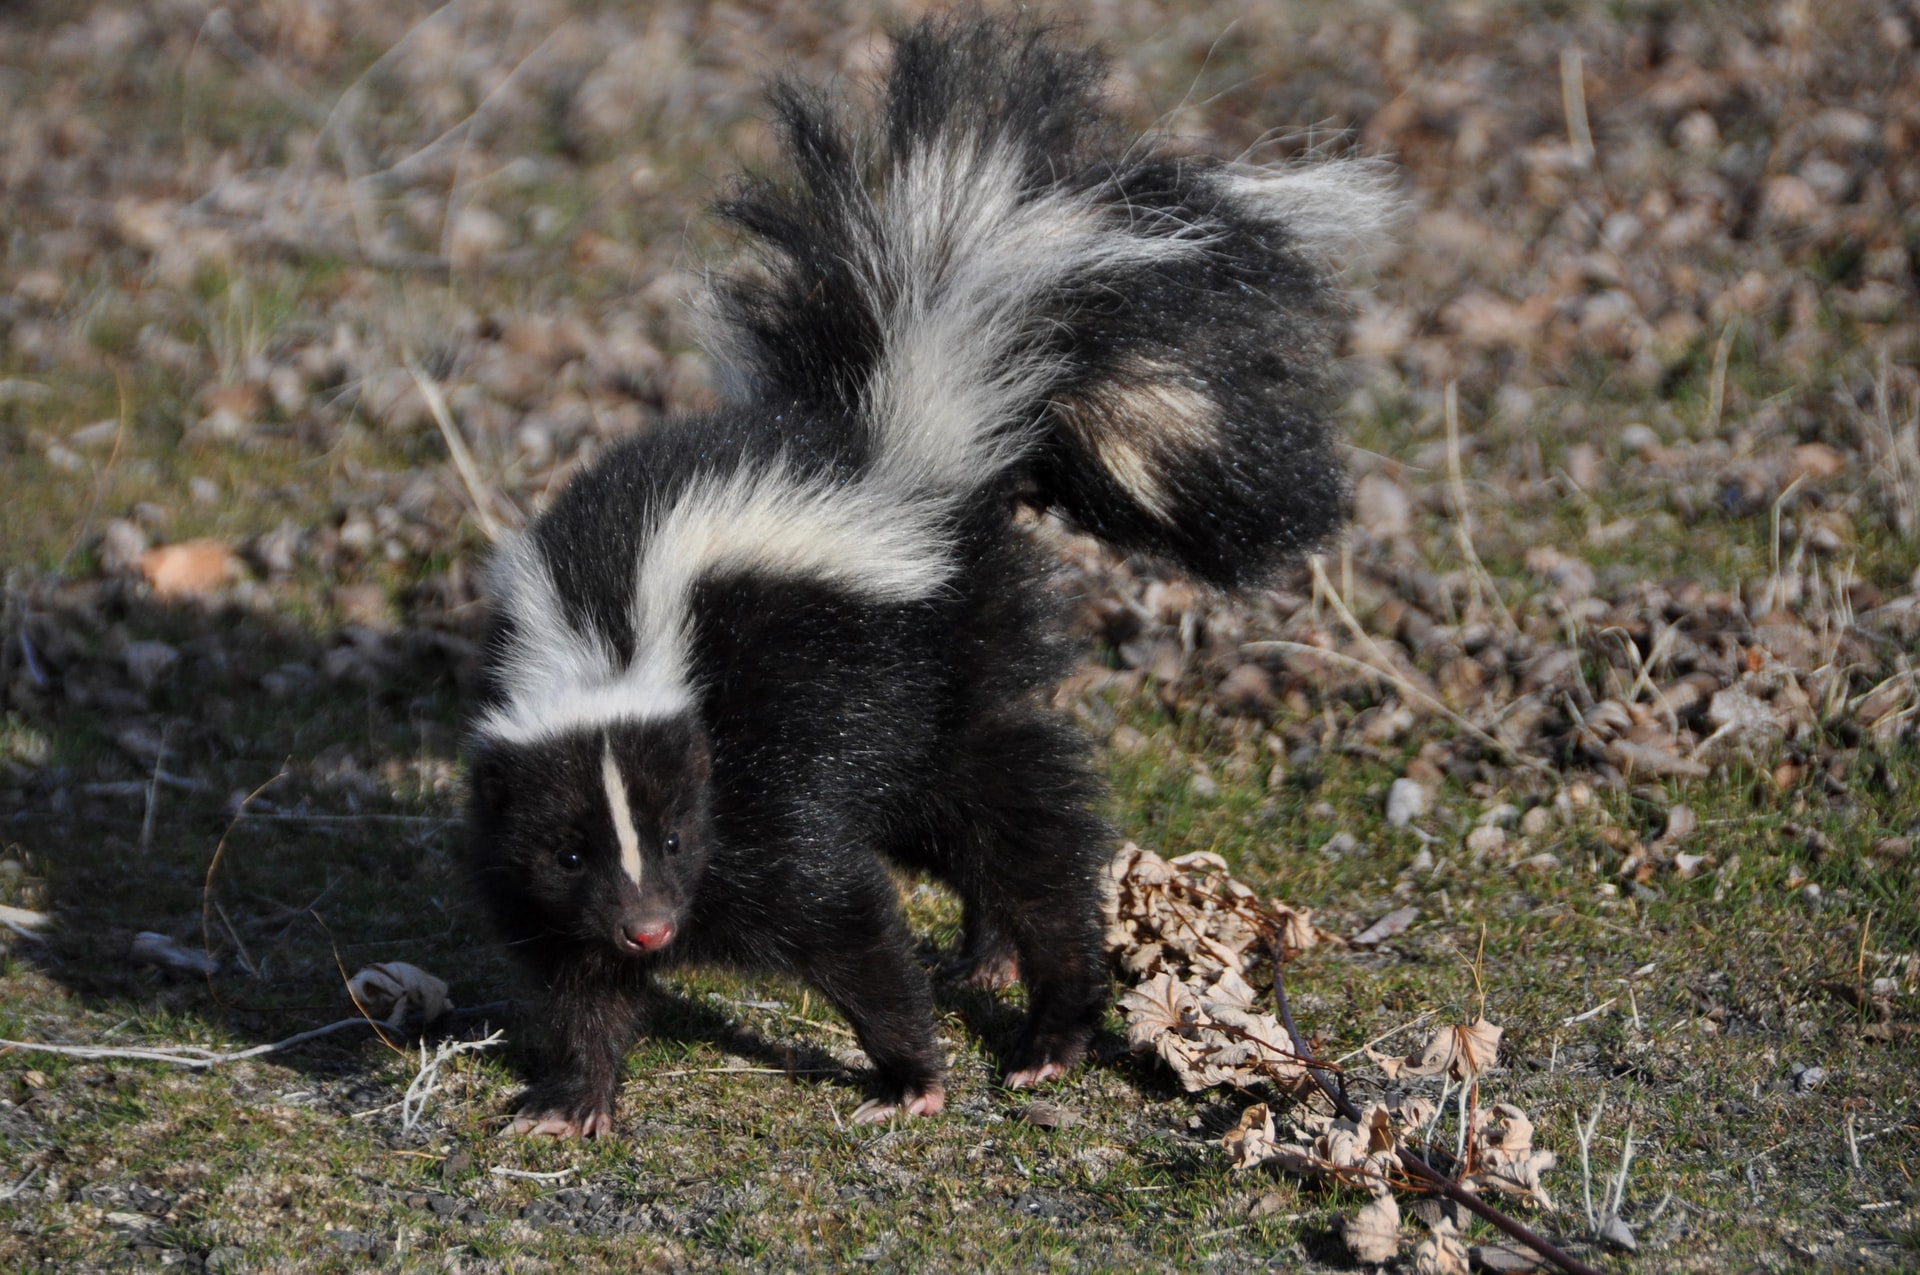 how to get rid of skunk smell on dog without peroxide